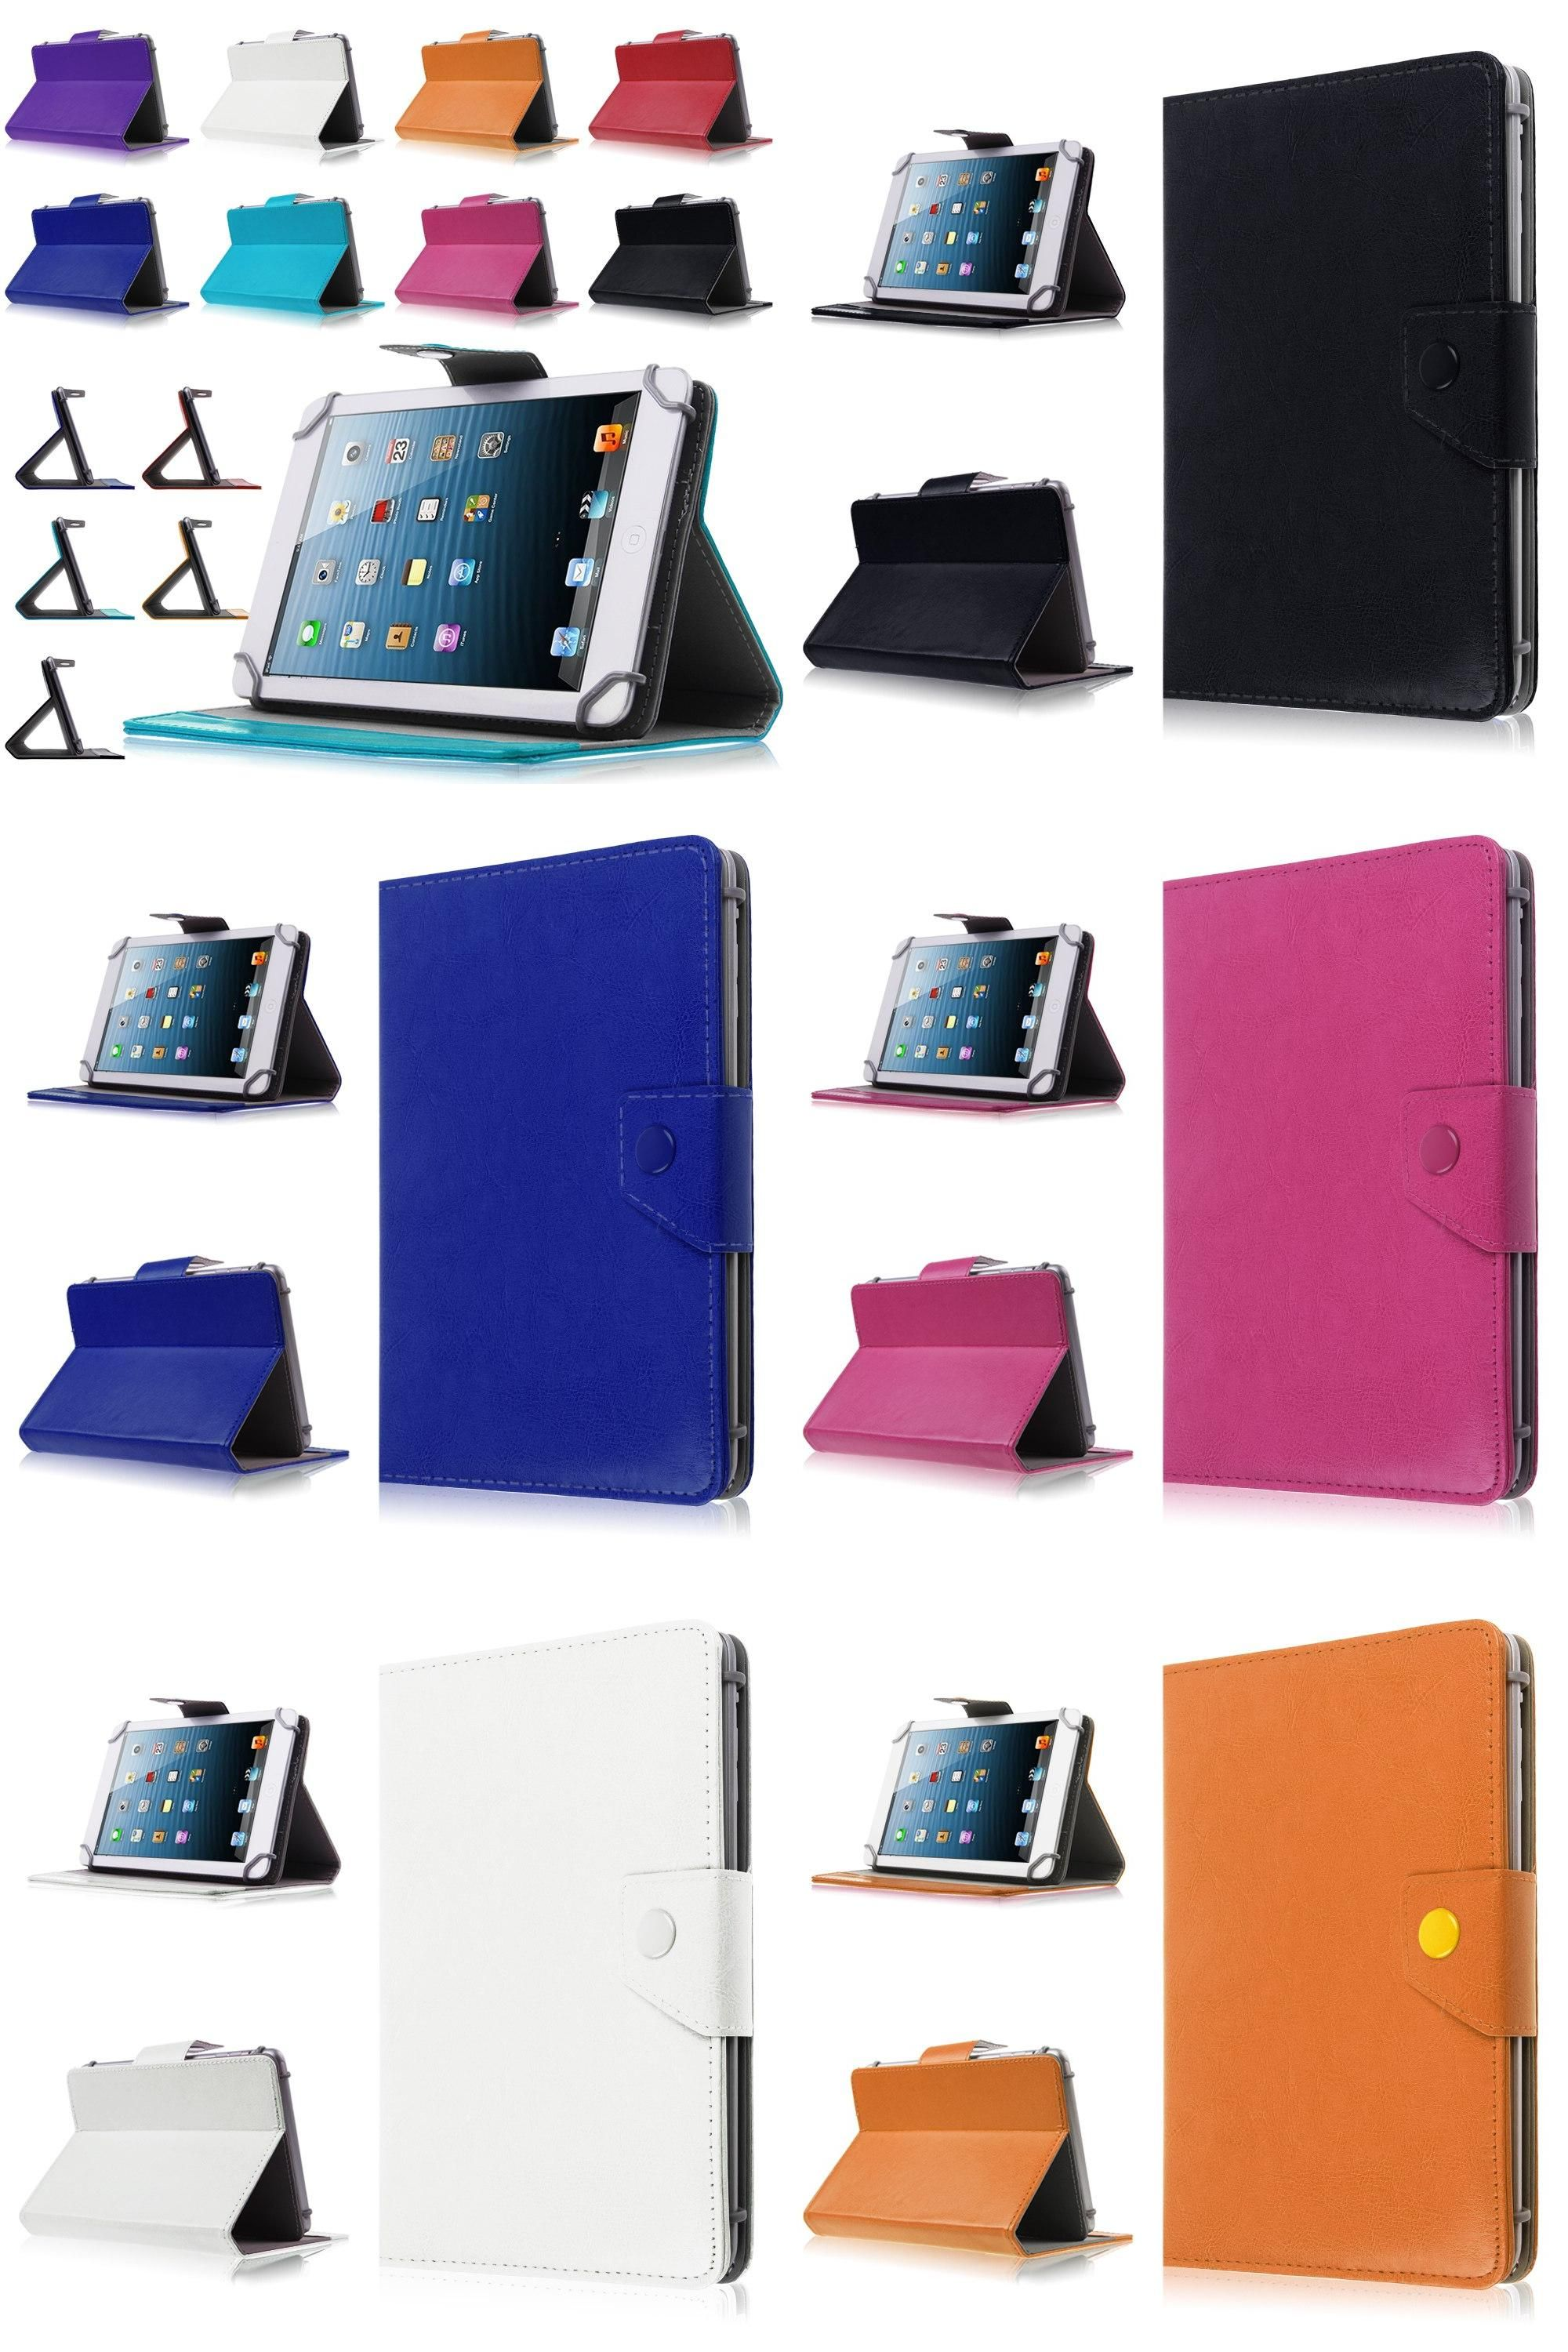 Visit To Buy For Lenovo 70 Inch Pu Leather Flip Tablets E Books S5000